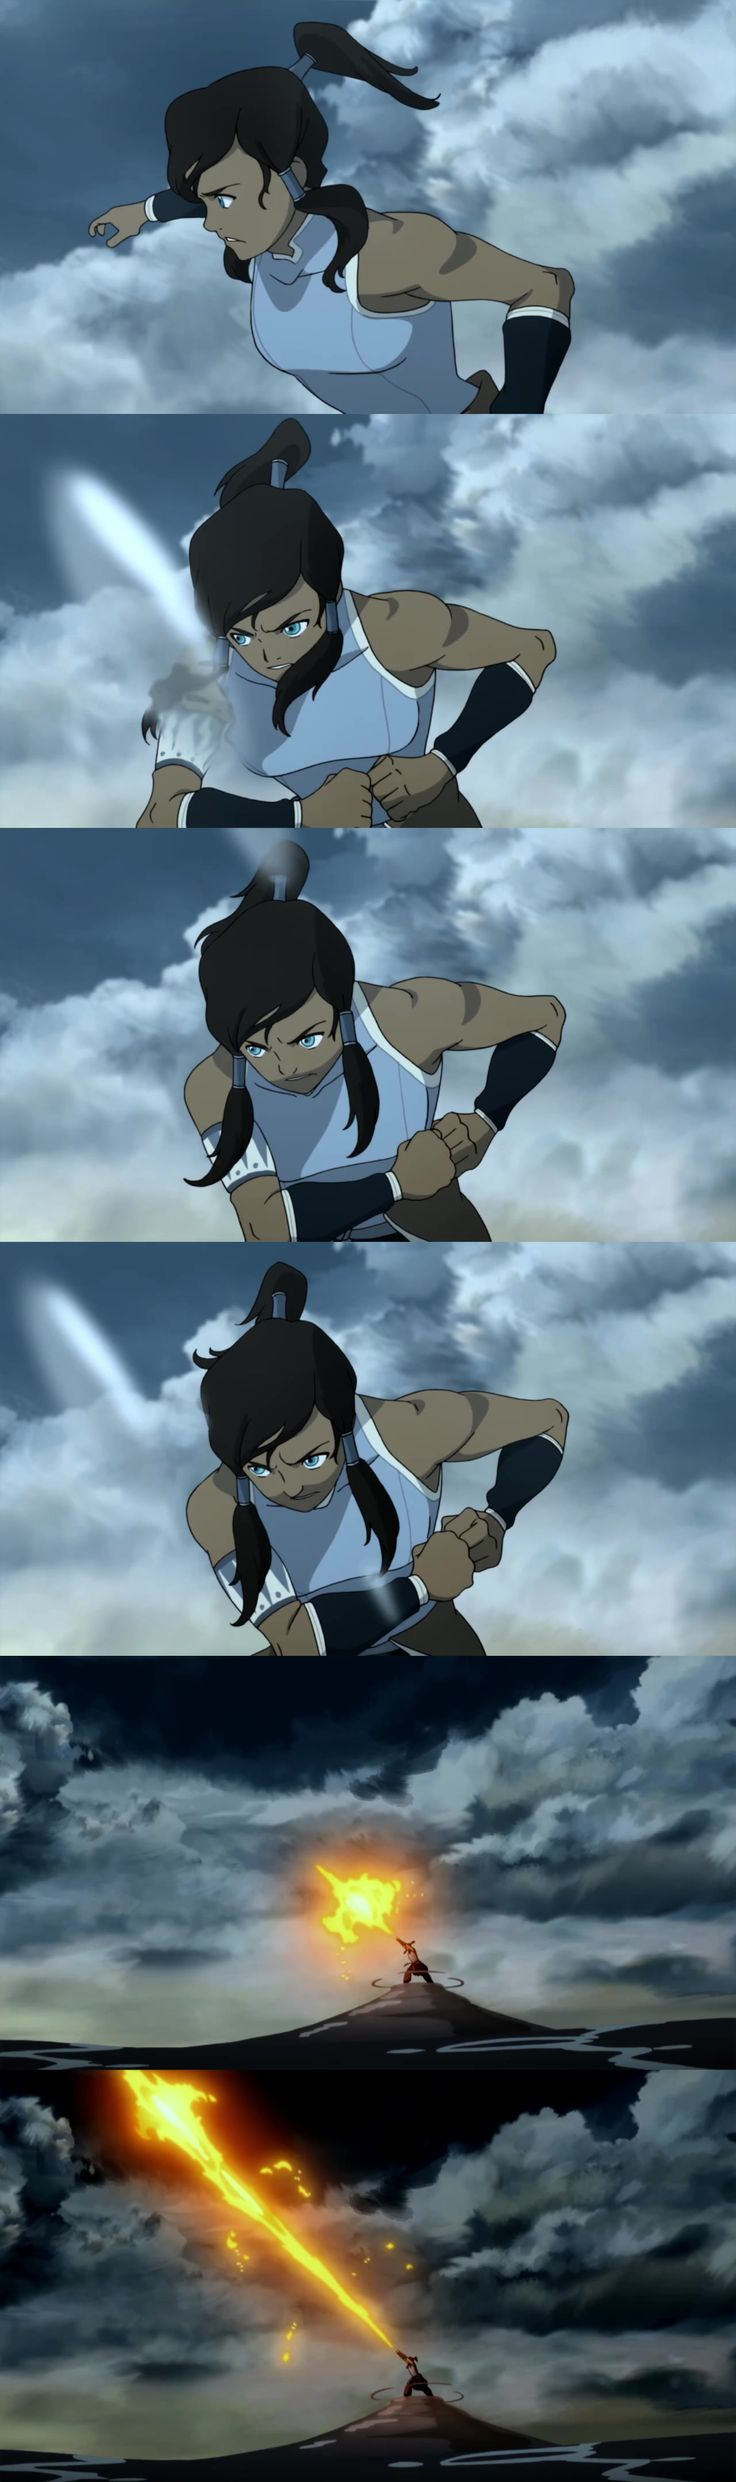 Korra Kamehameha. I can't be the only one who thought this..